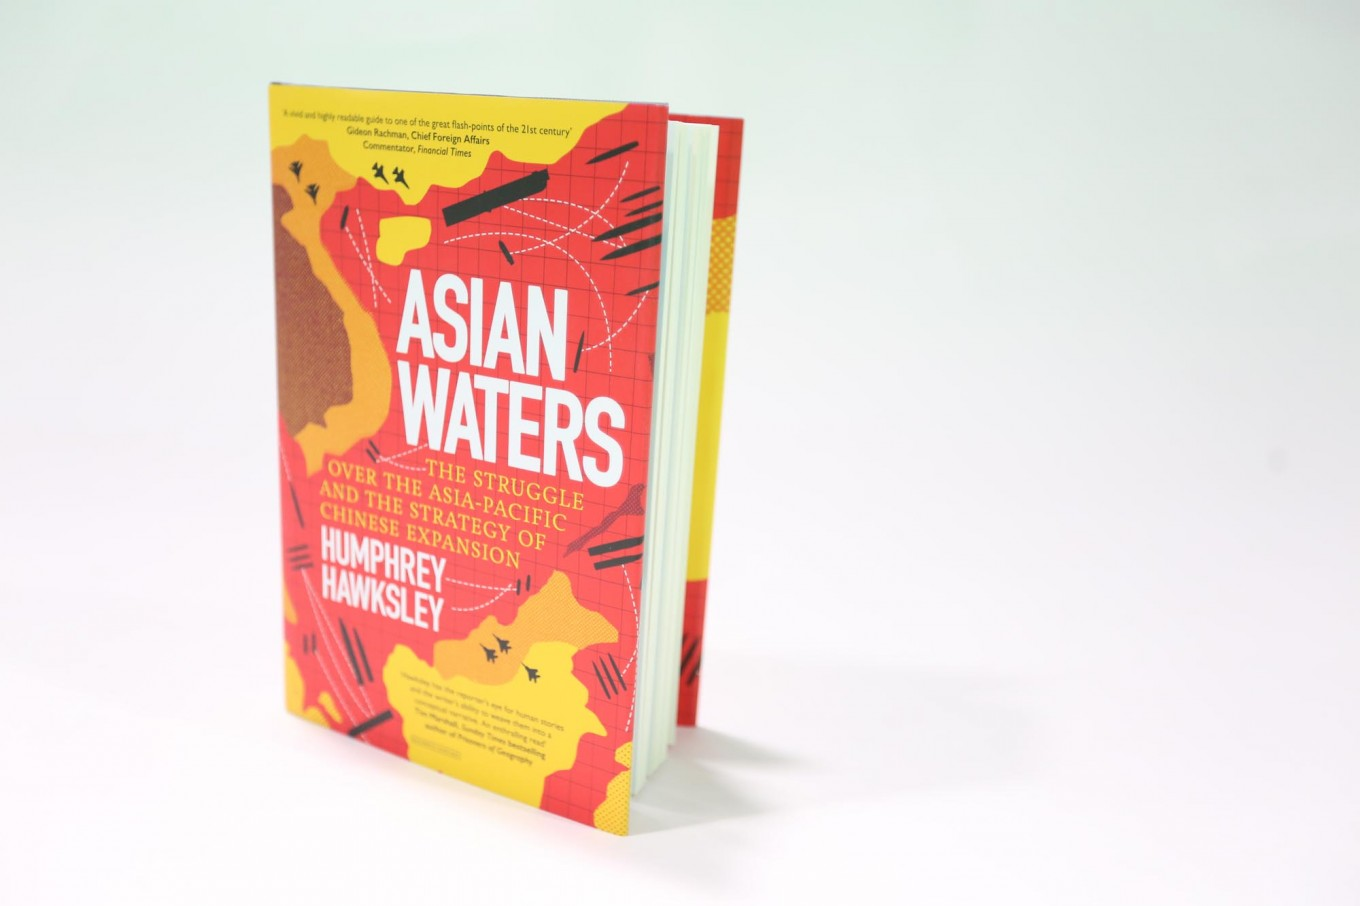 In 'Asian Waters', Humphrey Hawksley sees Beijing with China's eyes